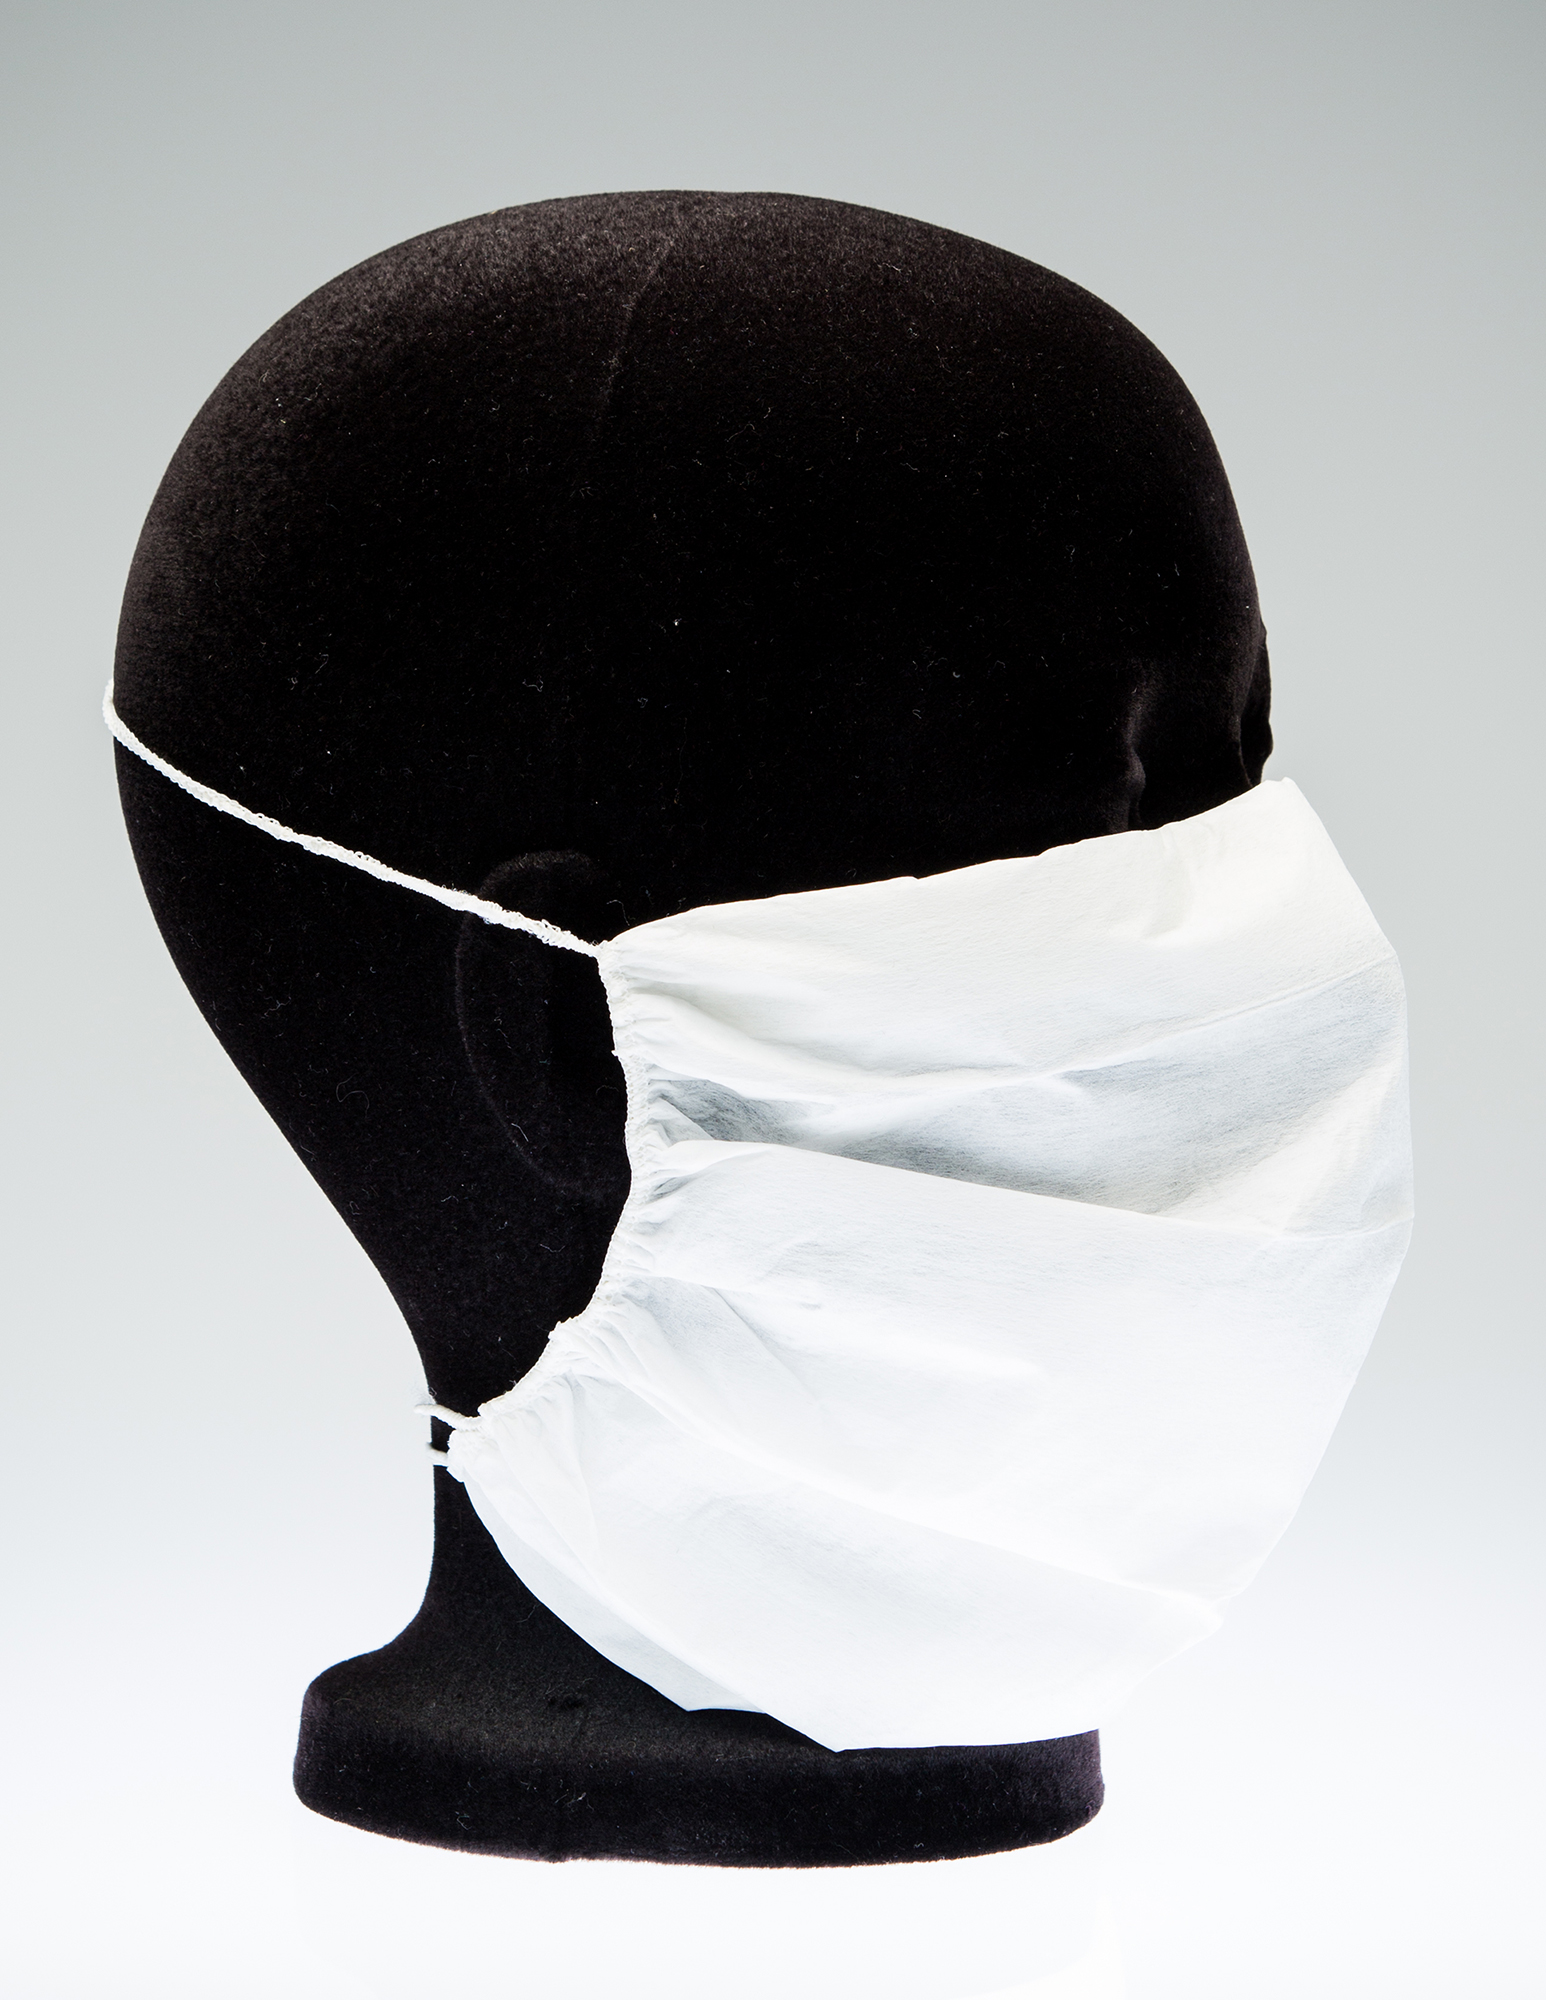 Disposable face masks for use in cleanrooms.